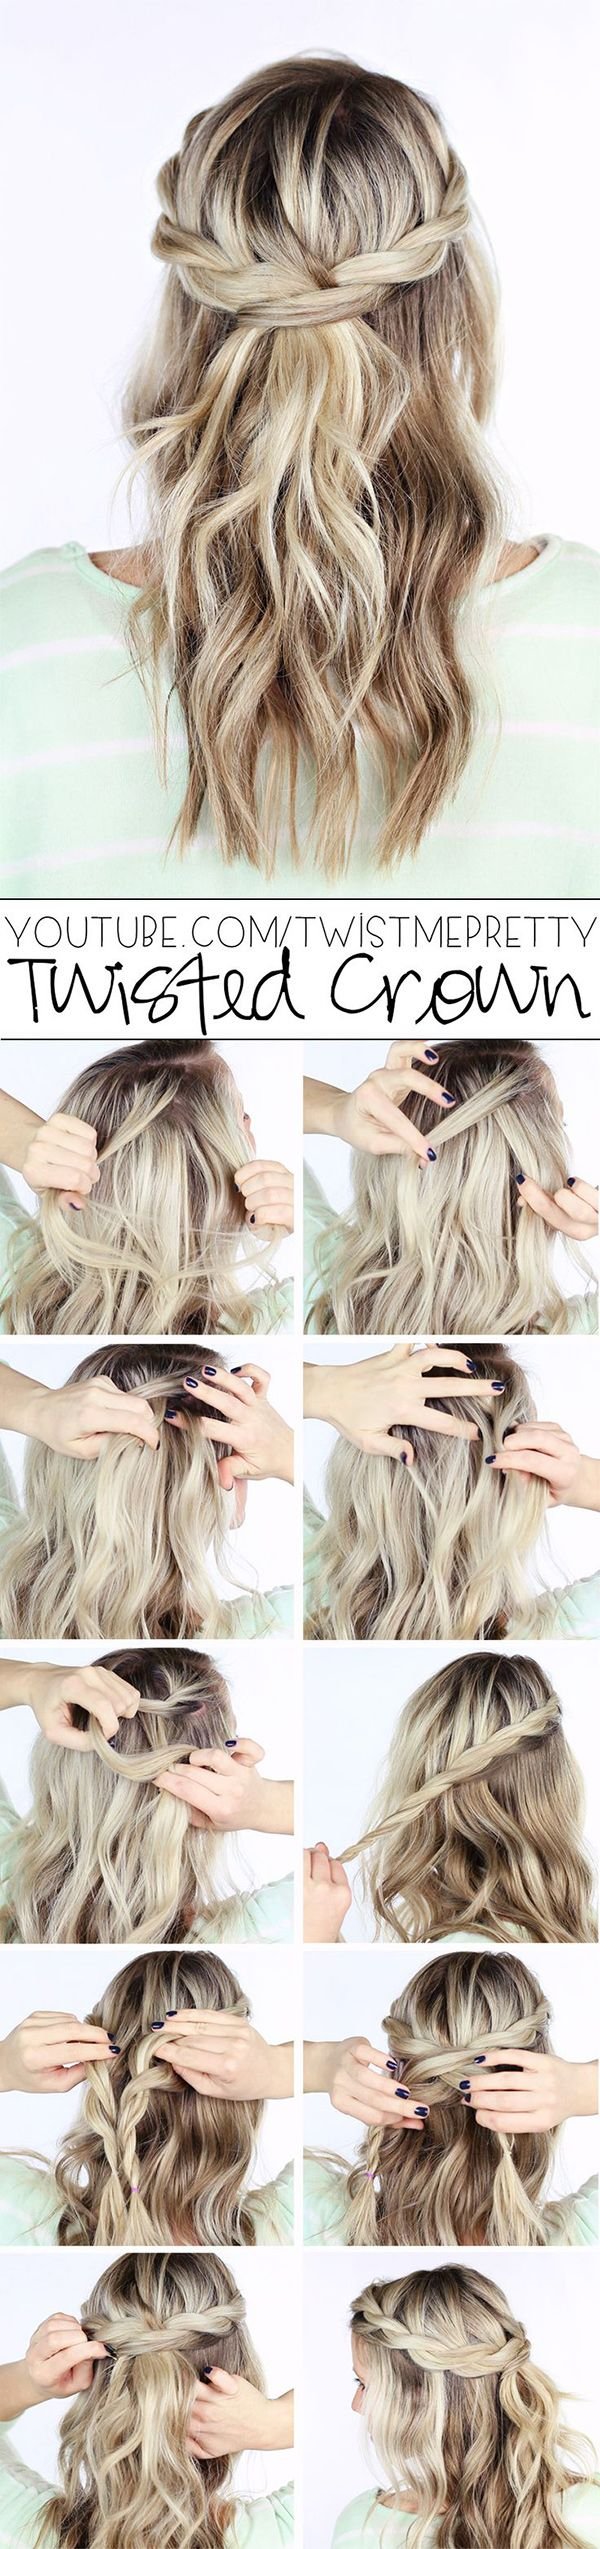 boho braid tutorials that will give you cinderella hair for prom